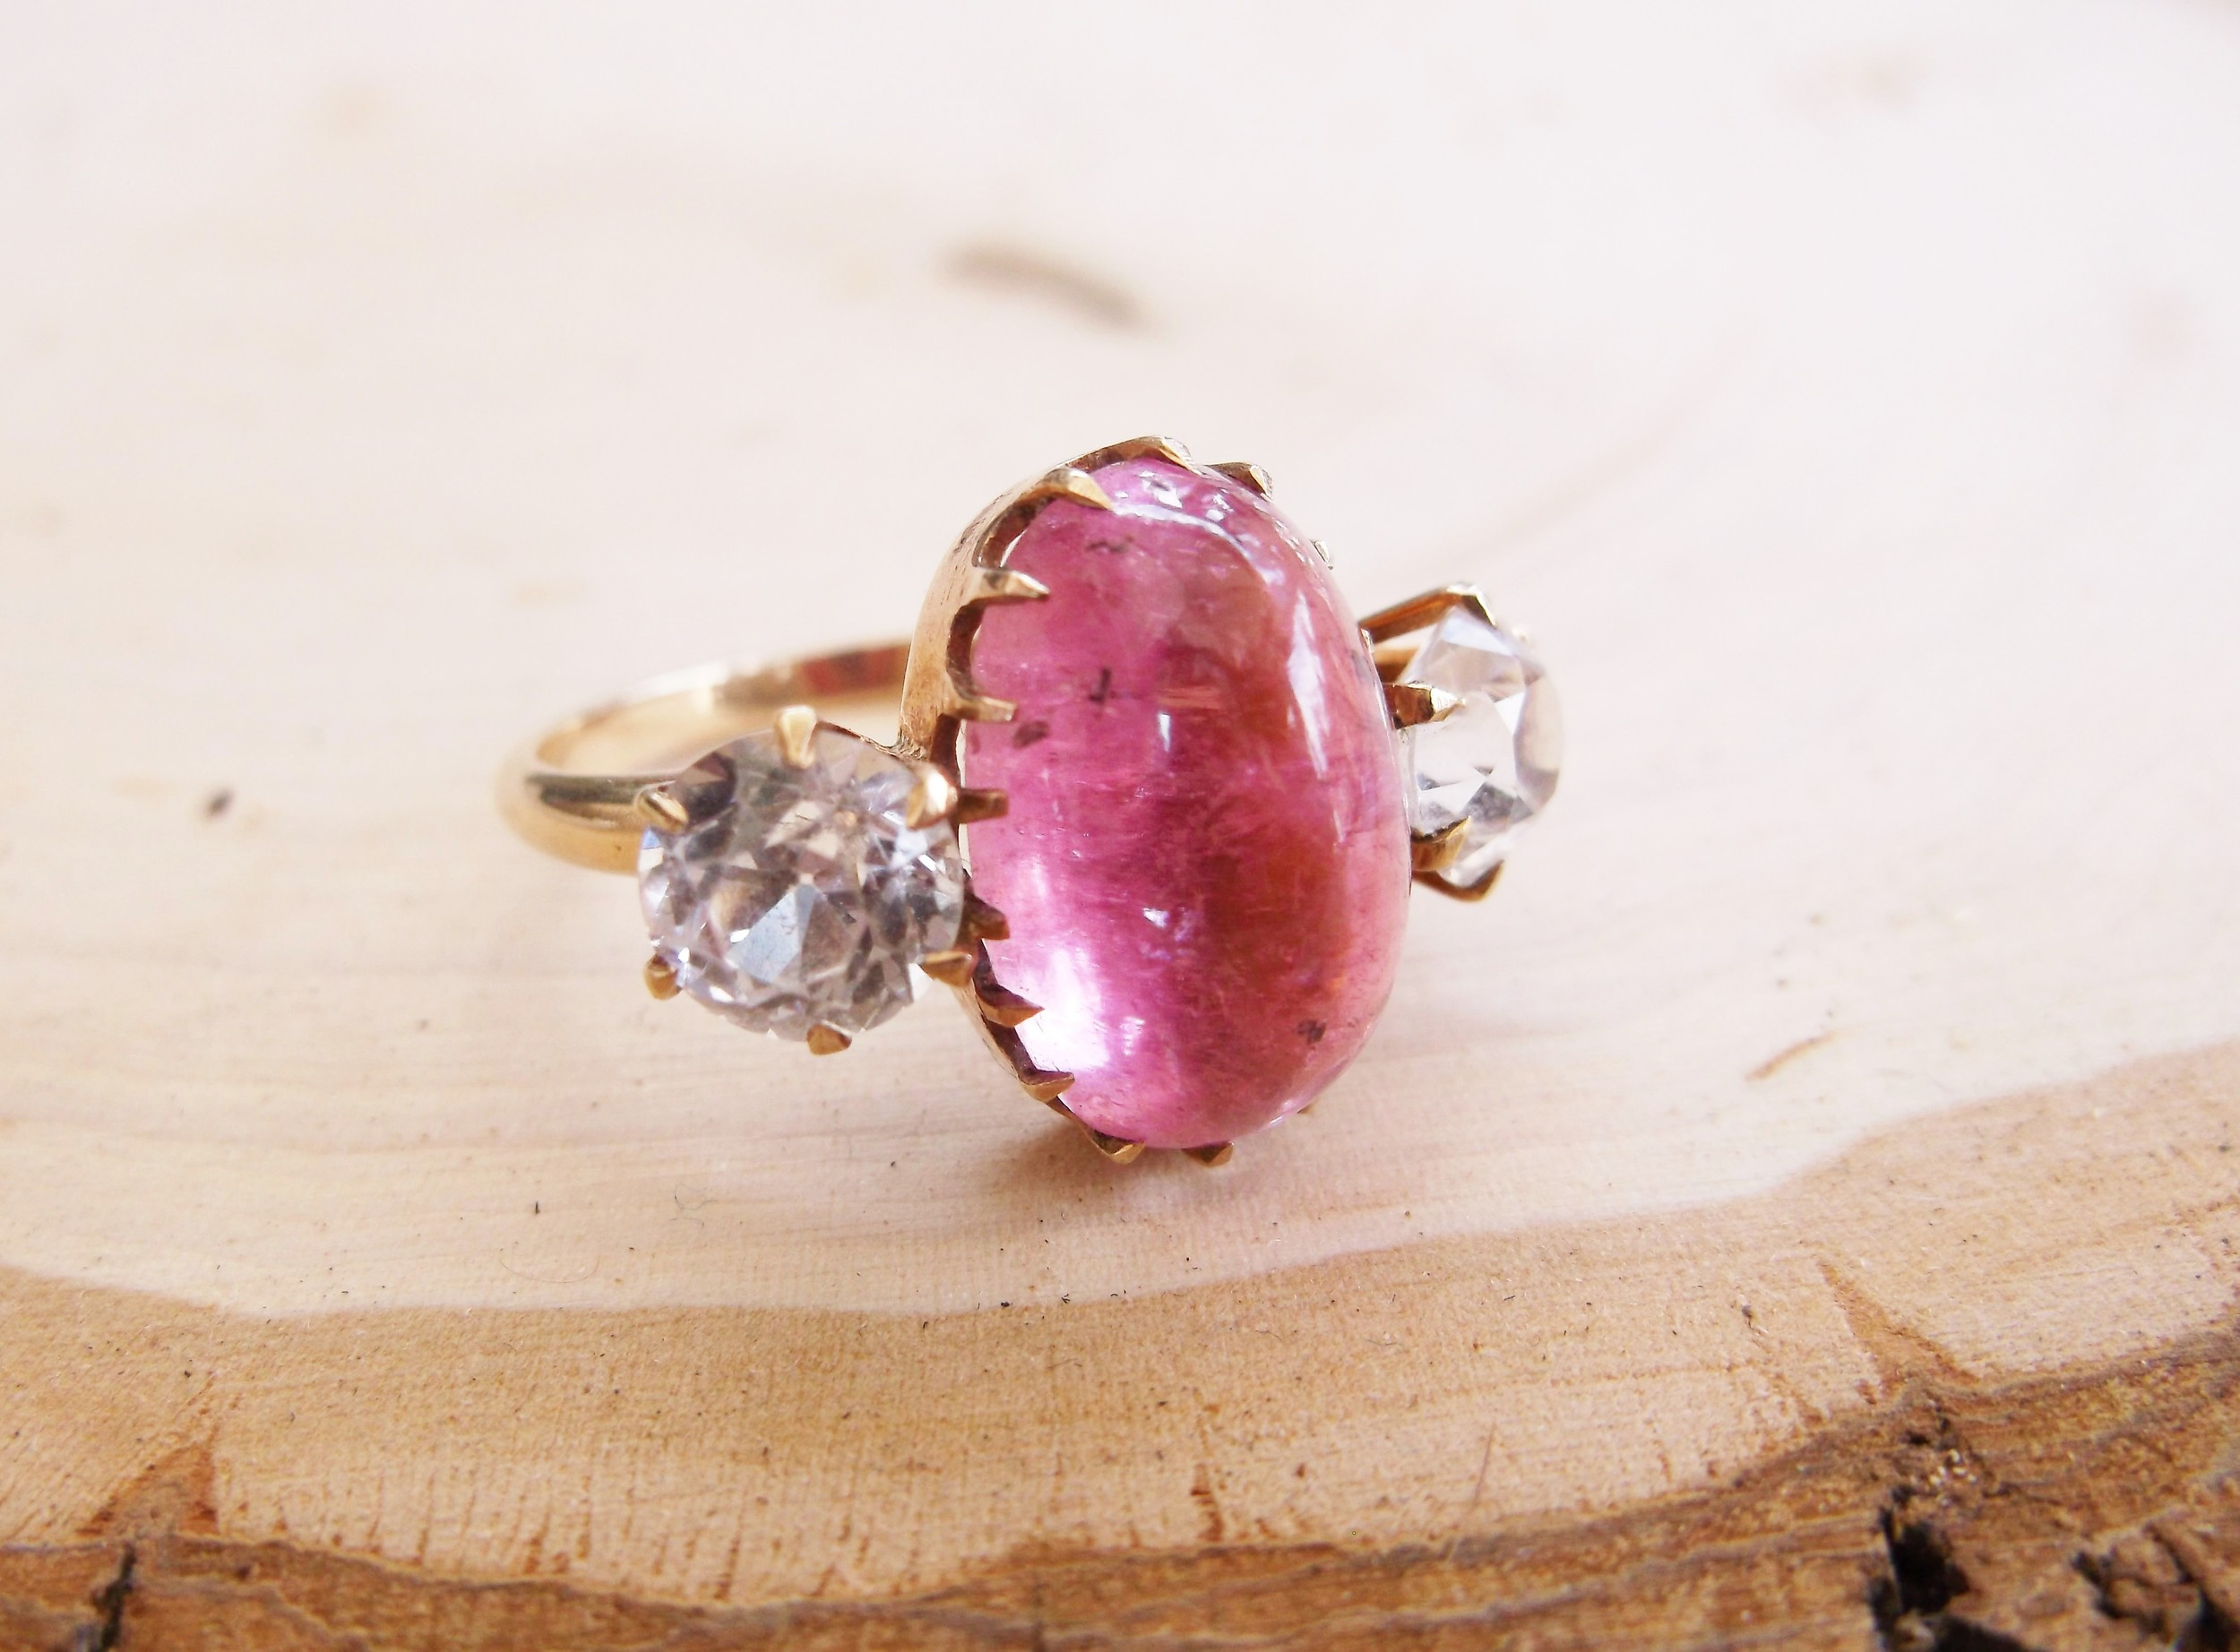 SOLD - Wonderfully unique 6.28 carat cabochon cut pink tourmaline ring with a 1.15 carat white sapphire on each side.